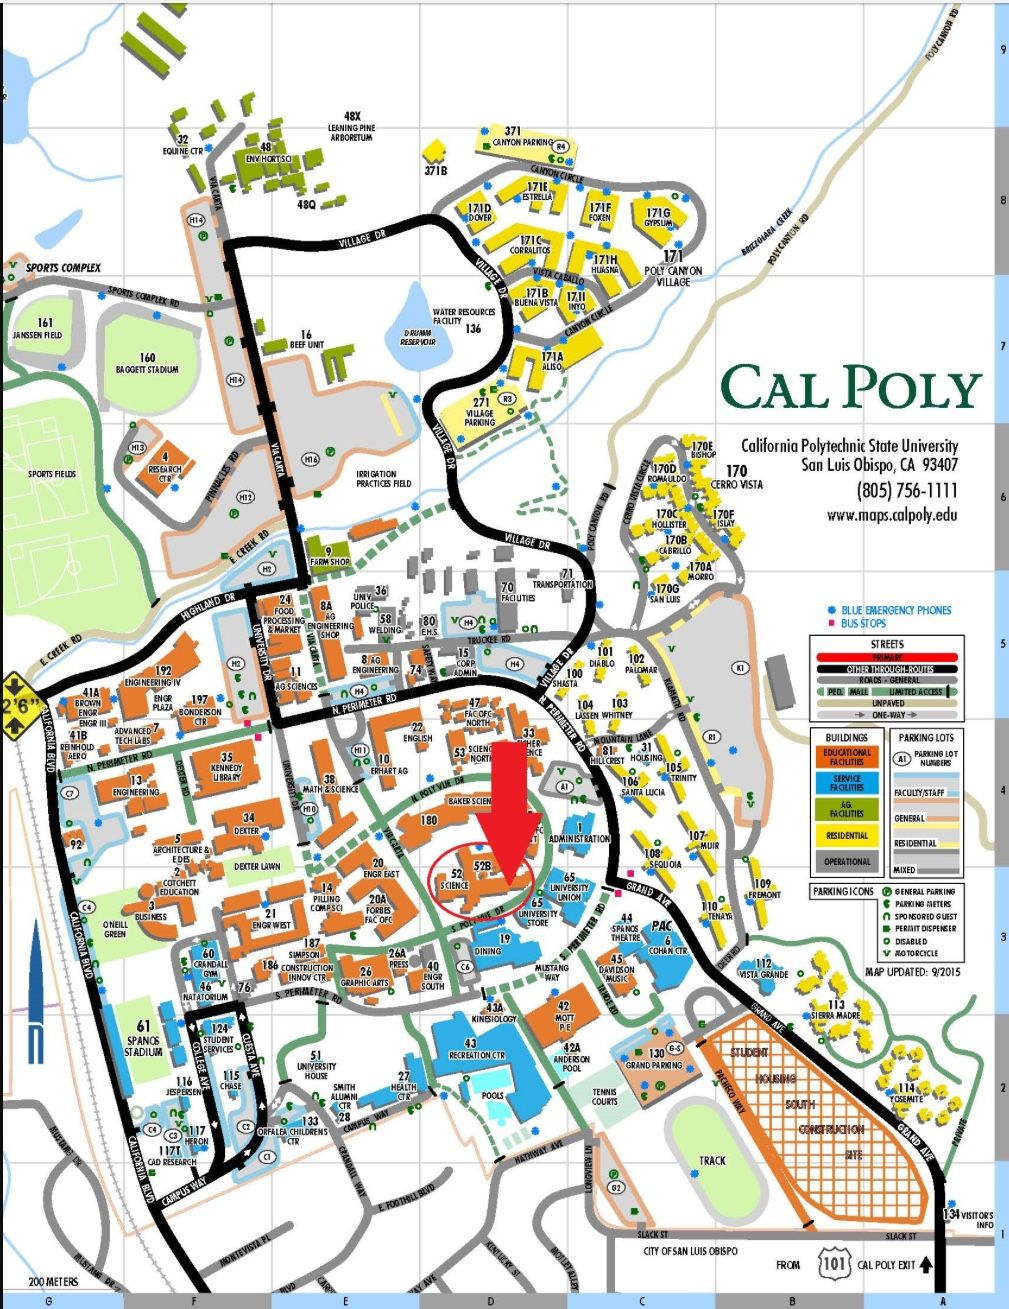 cal poly san luis obispo campus map Pin By Shannon Schulman On Cal Poly Slo California Polytechnic cal poly san luis obispo campus map